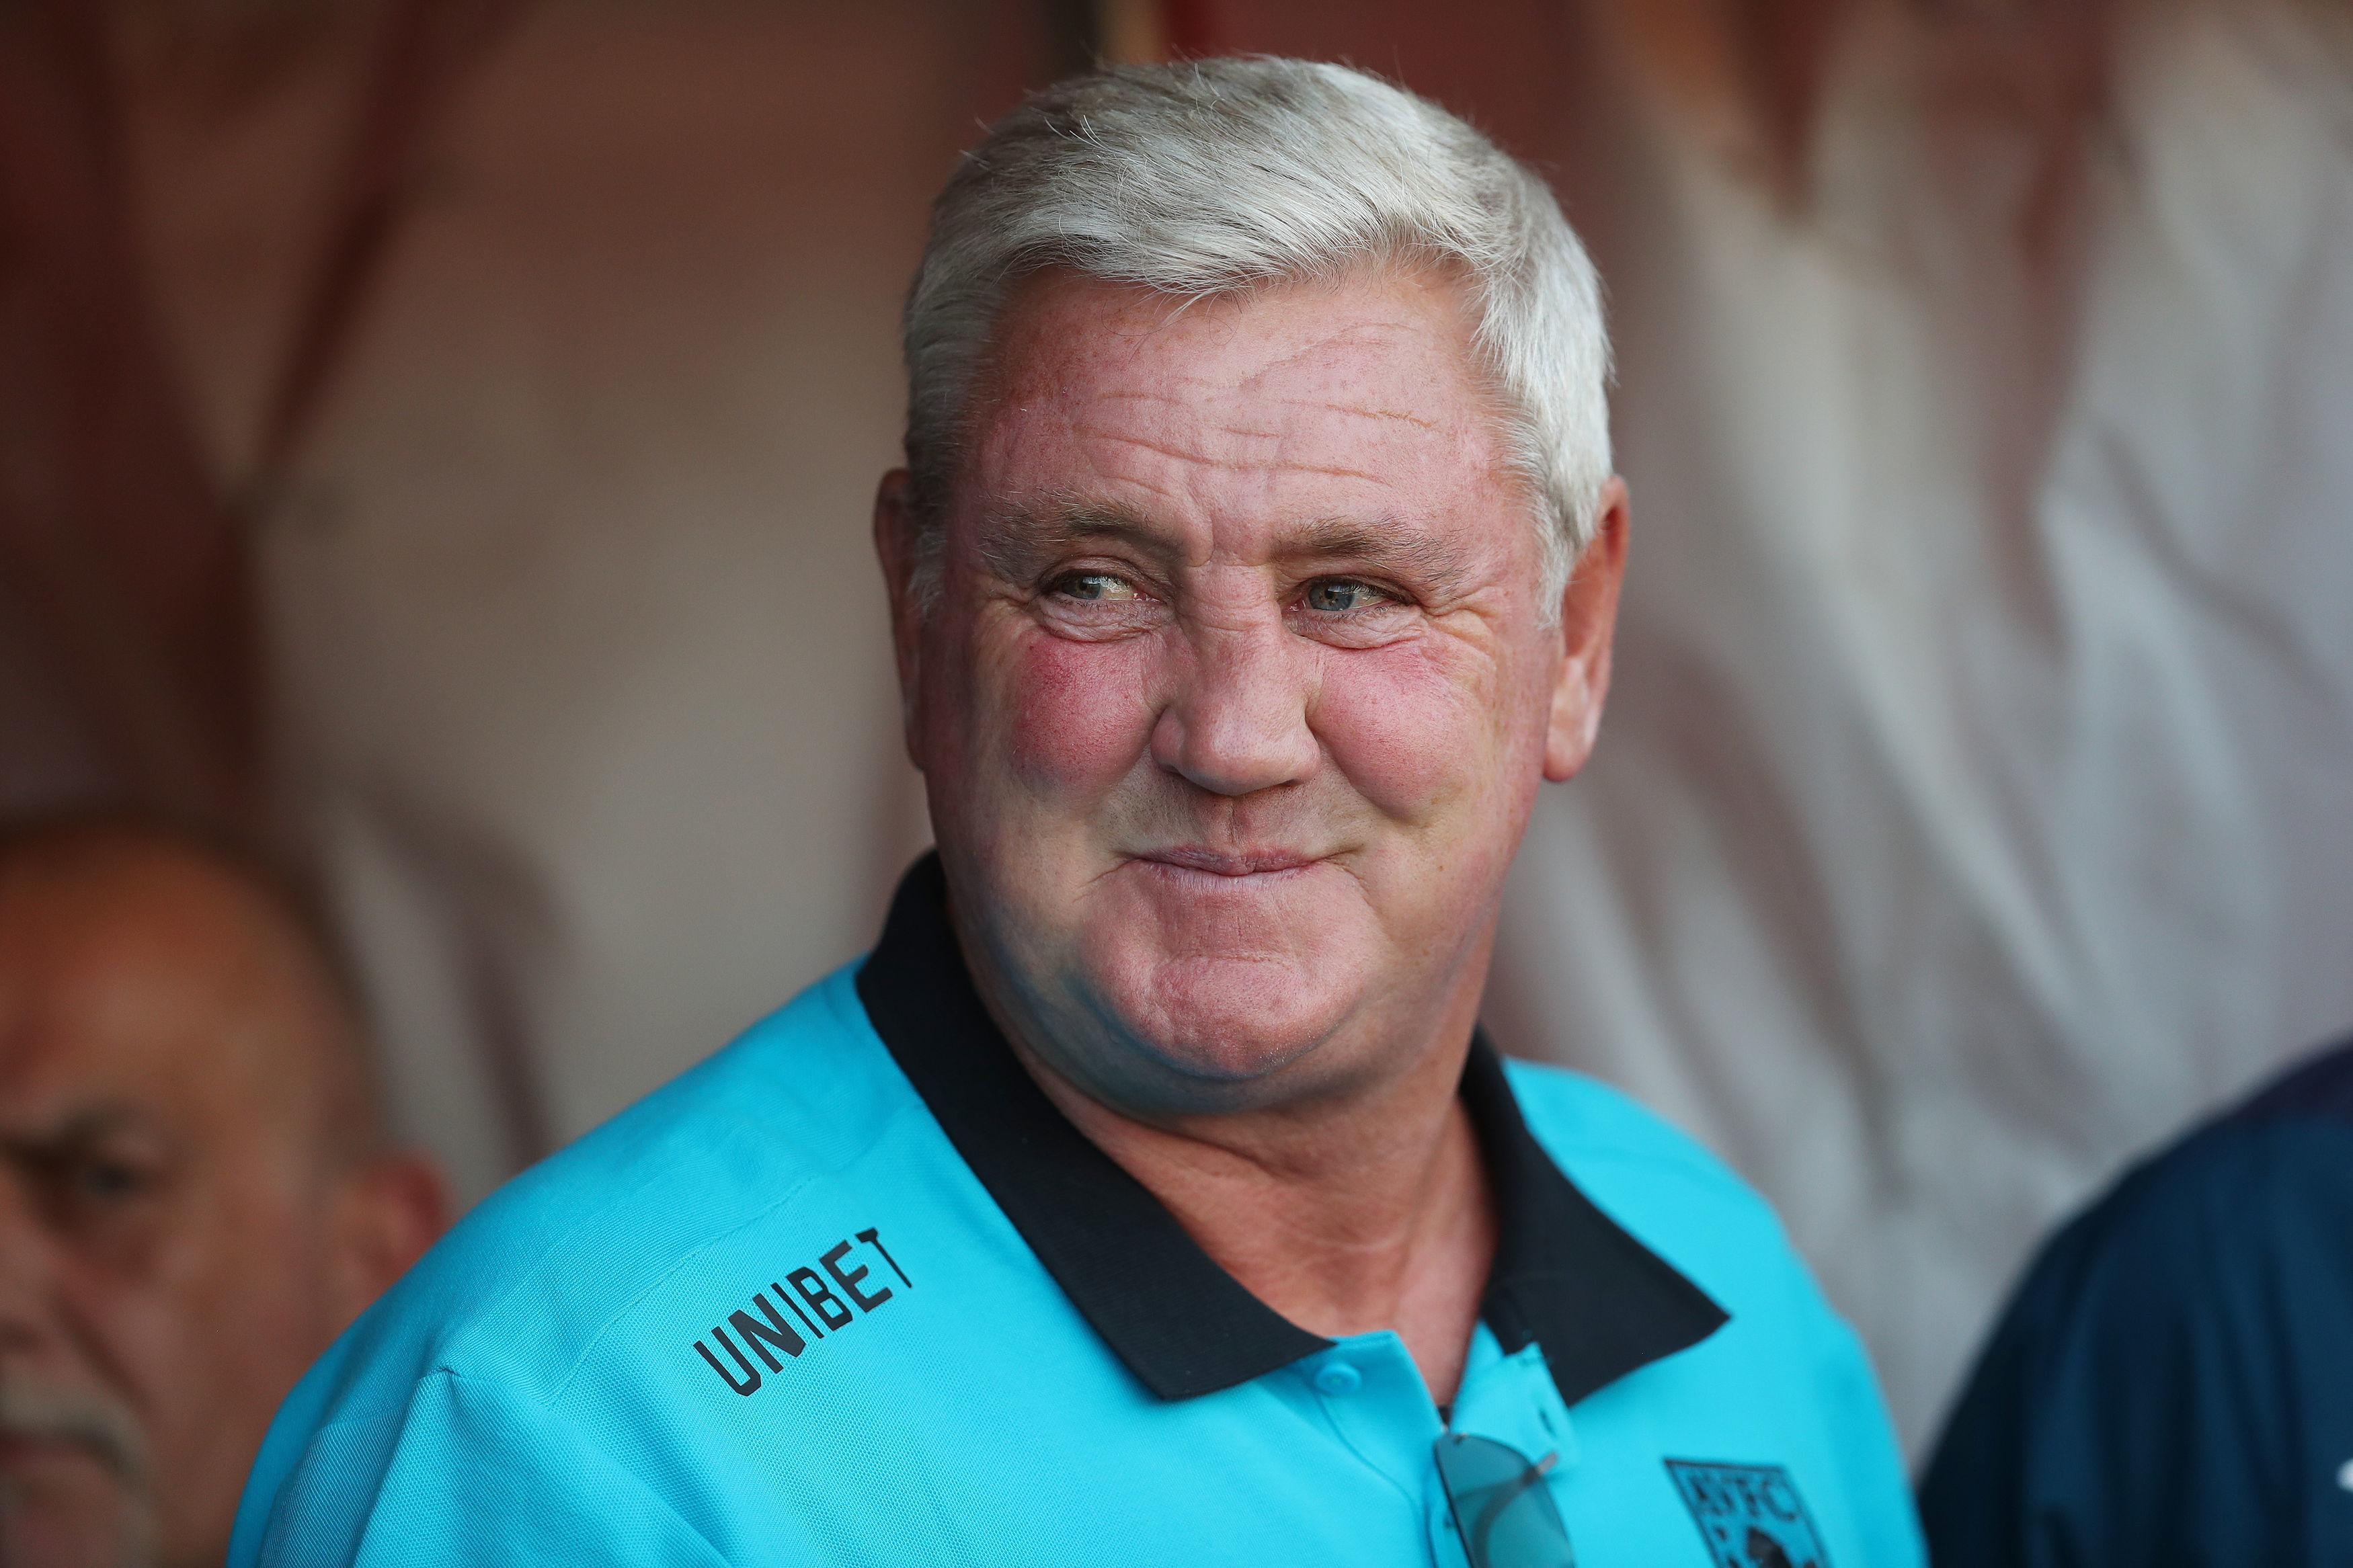 Steve Bruce has had a difficult summer after losing in the play-off final and limited transfer funds.